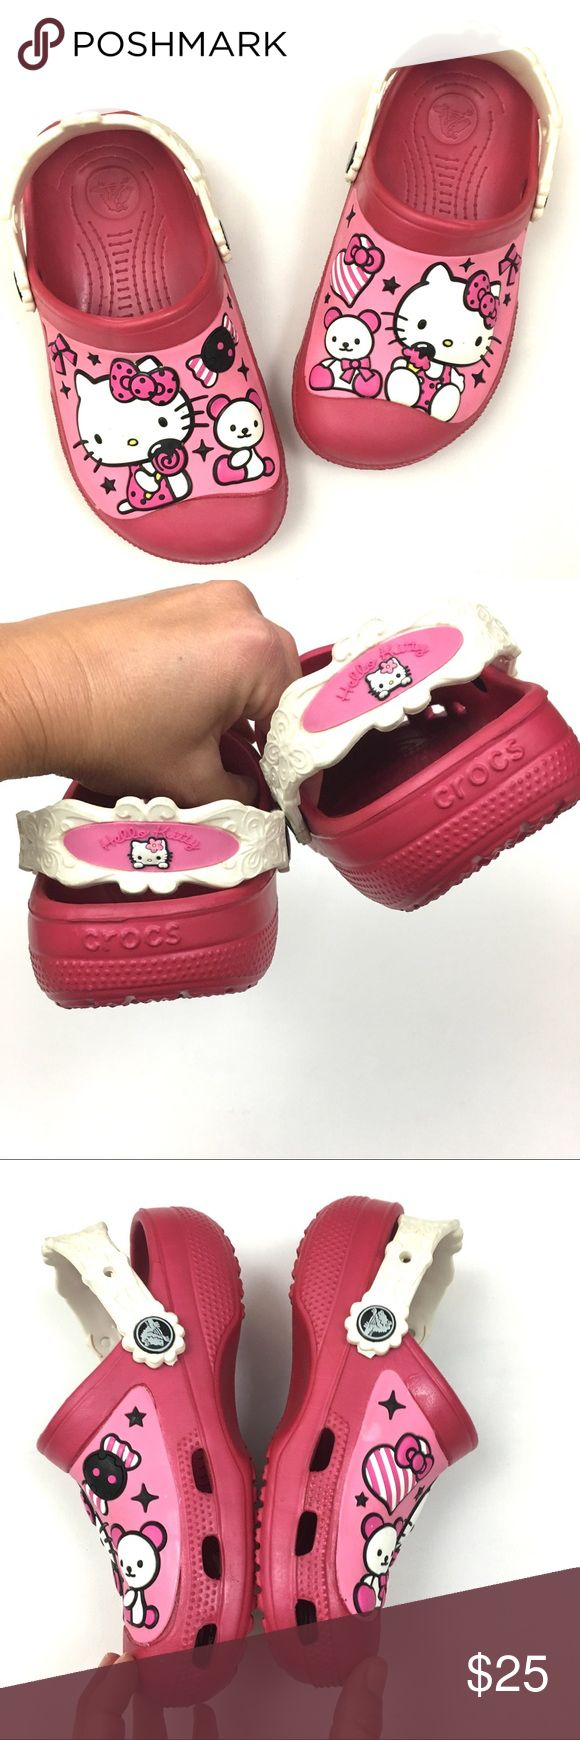 Hello Kitty Junior Size (J2) Crocs Hello Kitty Junior Size (J2) Crocs (see size chart). Hot pink with Hello Kitty design. Very lightly worn with minimal signs of wear. CROCS Shoes